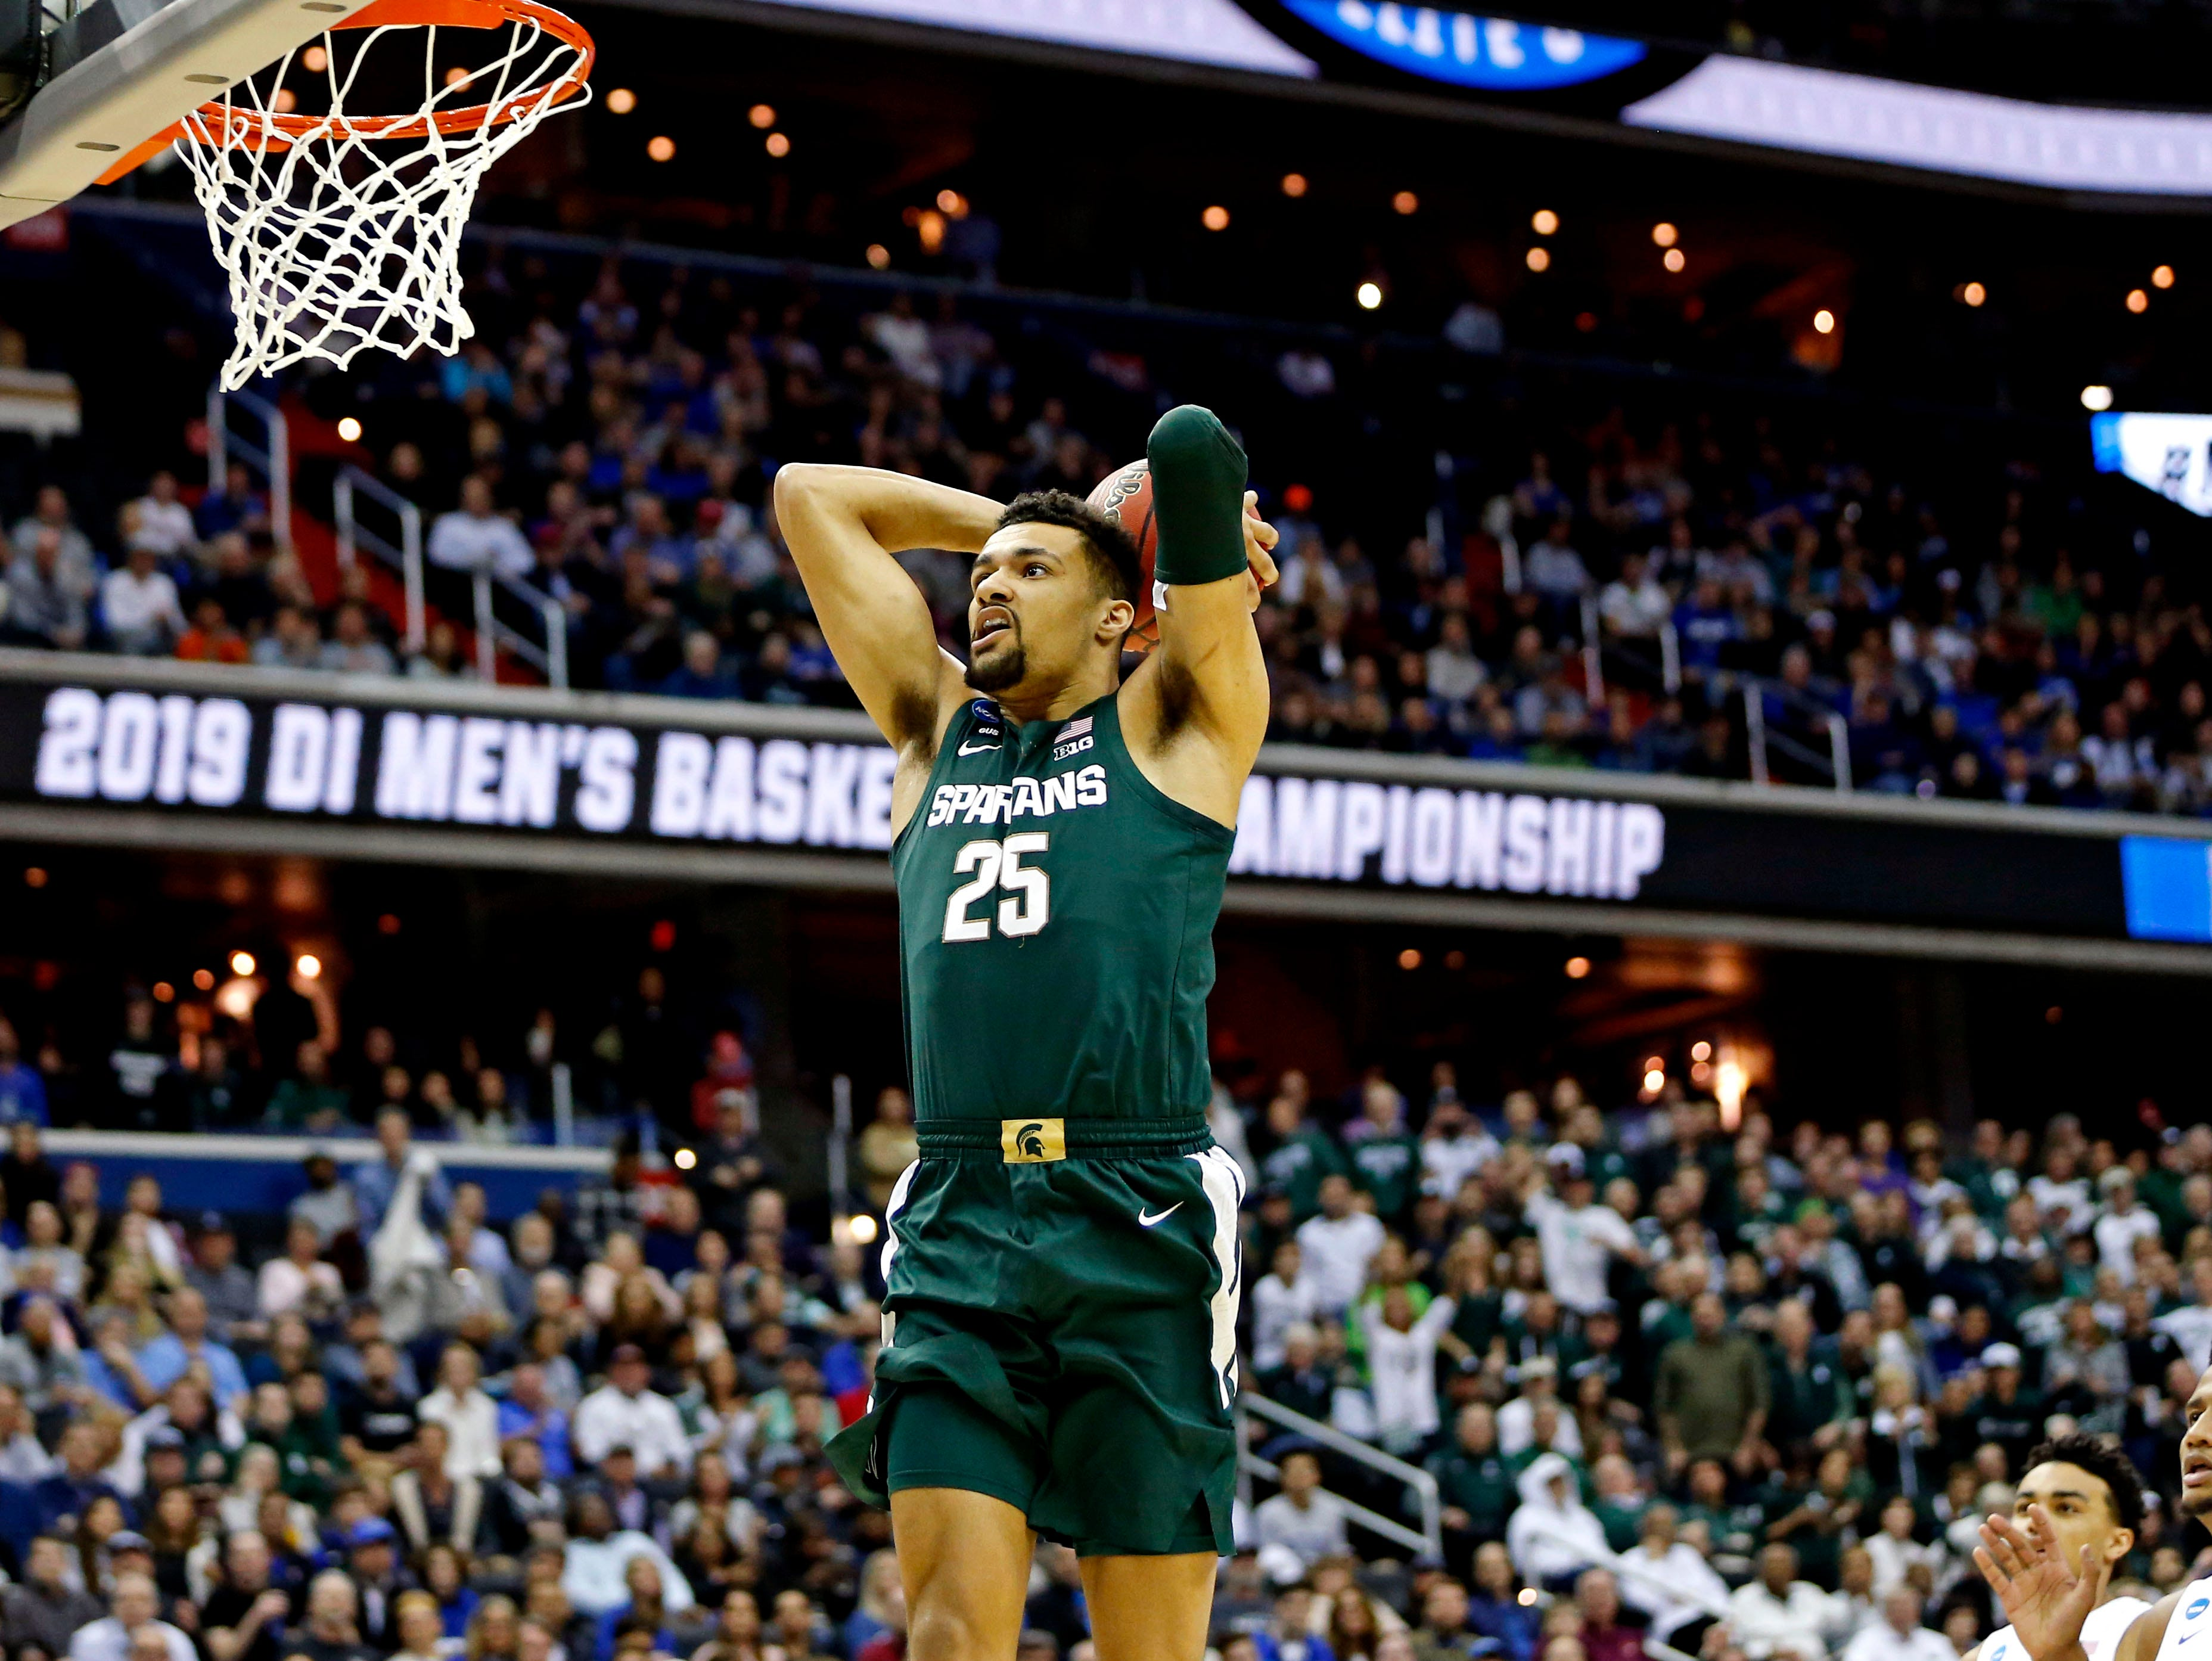 Mar 31, 2019; Washington, DC, USA; Michigan State Spartans forward Kenny Goins (25) dunks the ball during the first half against the Duke Blue Devils in the championship game of the east regional of the 2019 NCAA Tournament at Capital One Arena. Mandatory Credit: Amber Searls-USA TODAY Sports